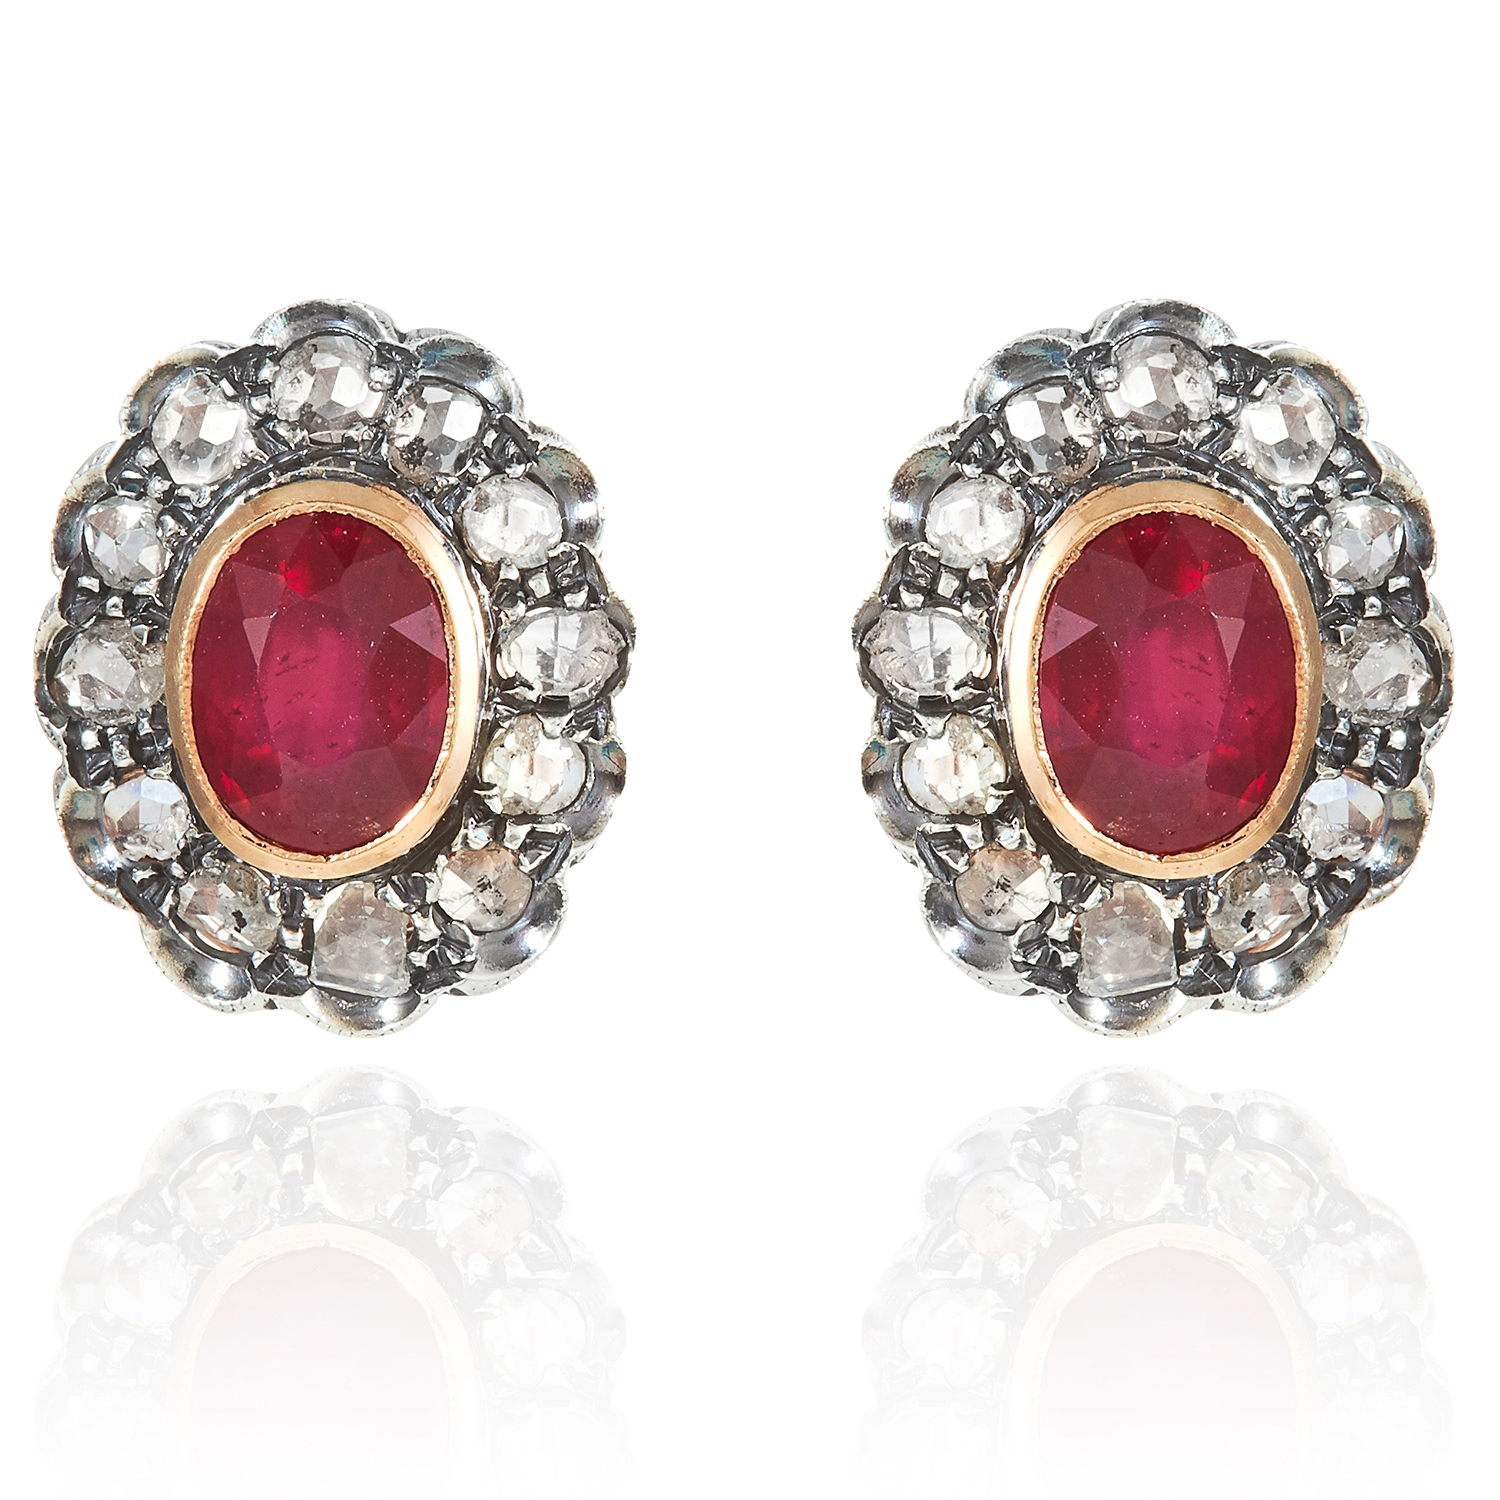 Los 317 - A PAIR OF RUBY AND DIAMOND CLUSTER EARRINGS in high carat yellow gold and silver, each set with a